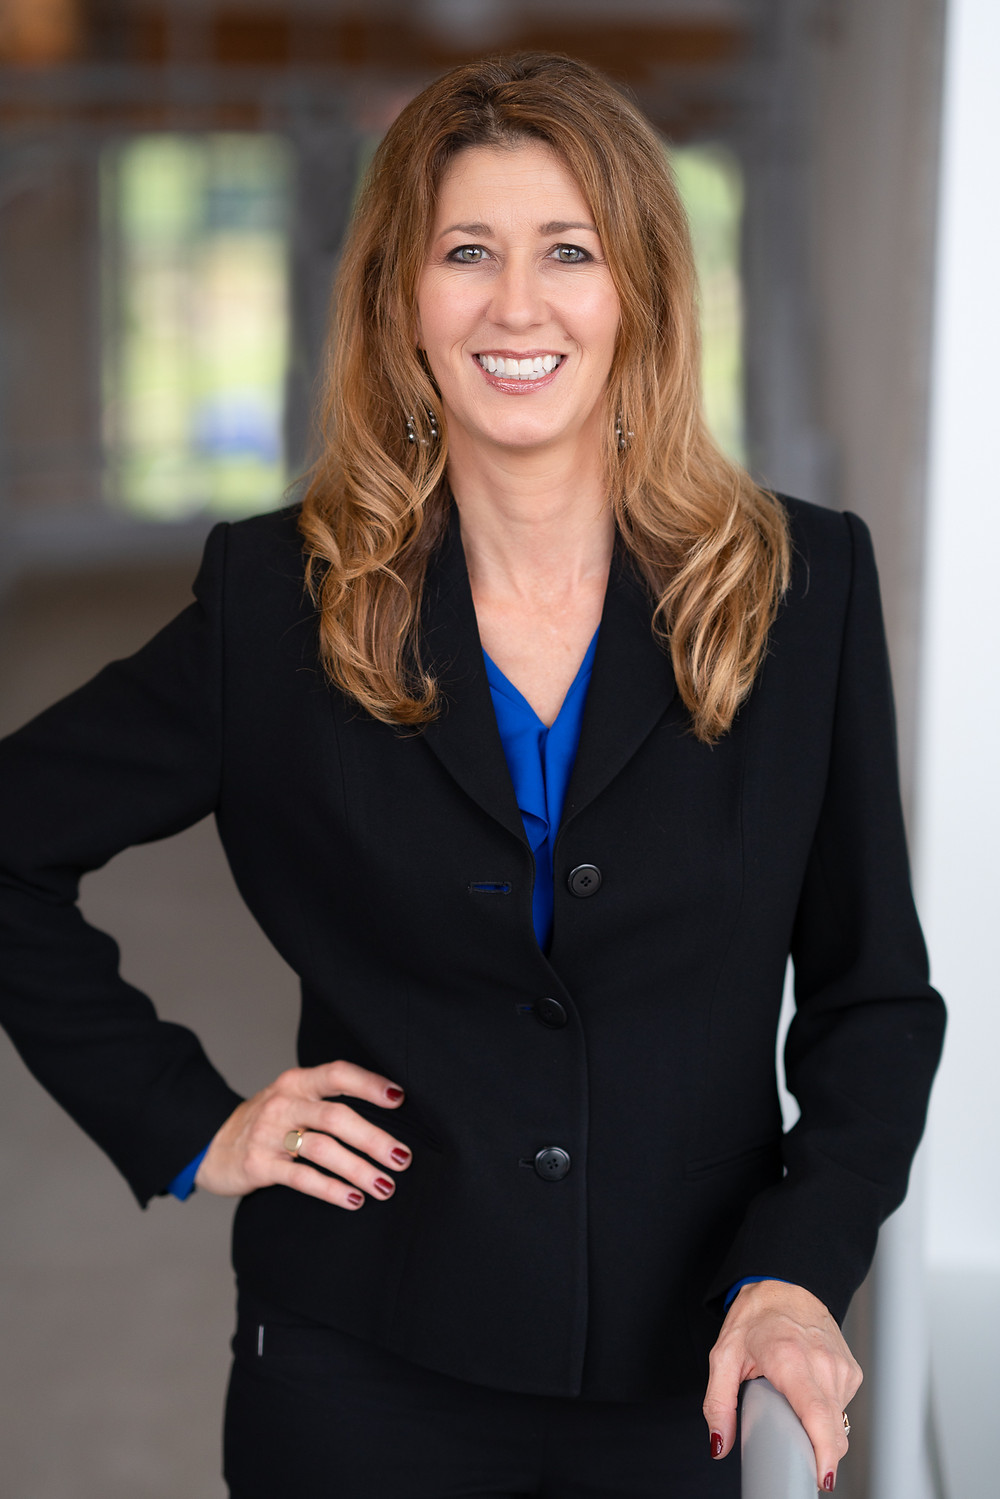 A business woman dressed in a suit smiling at camera for a professional portrait